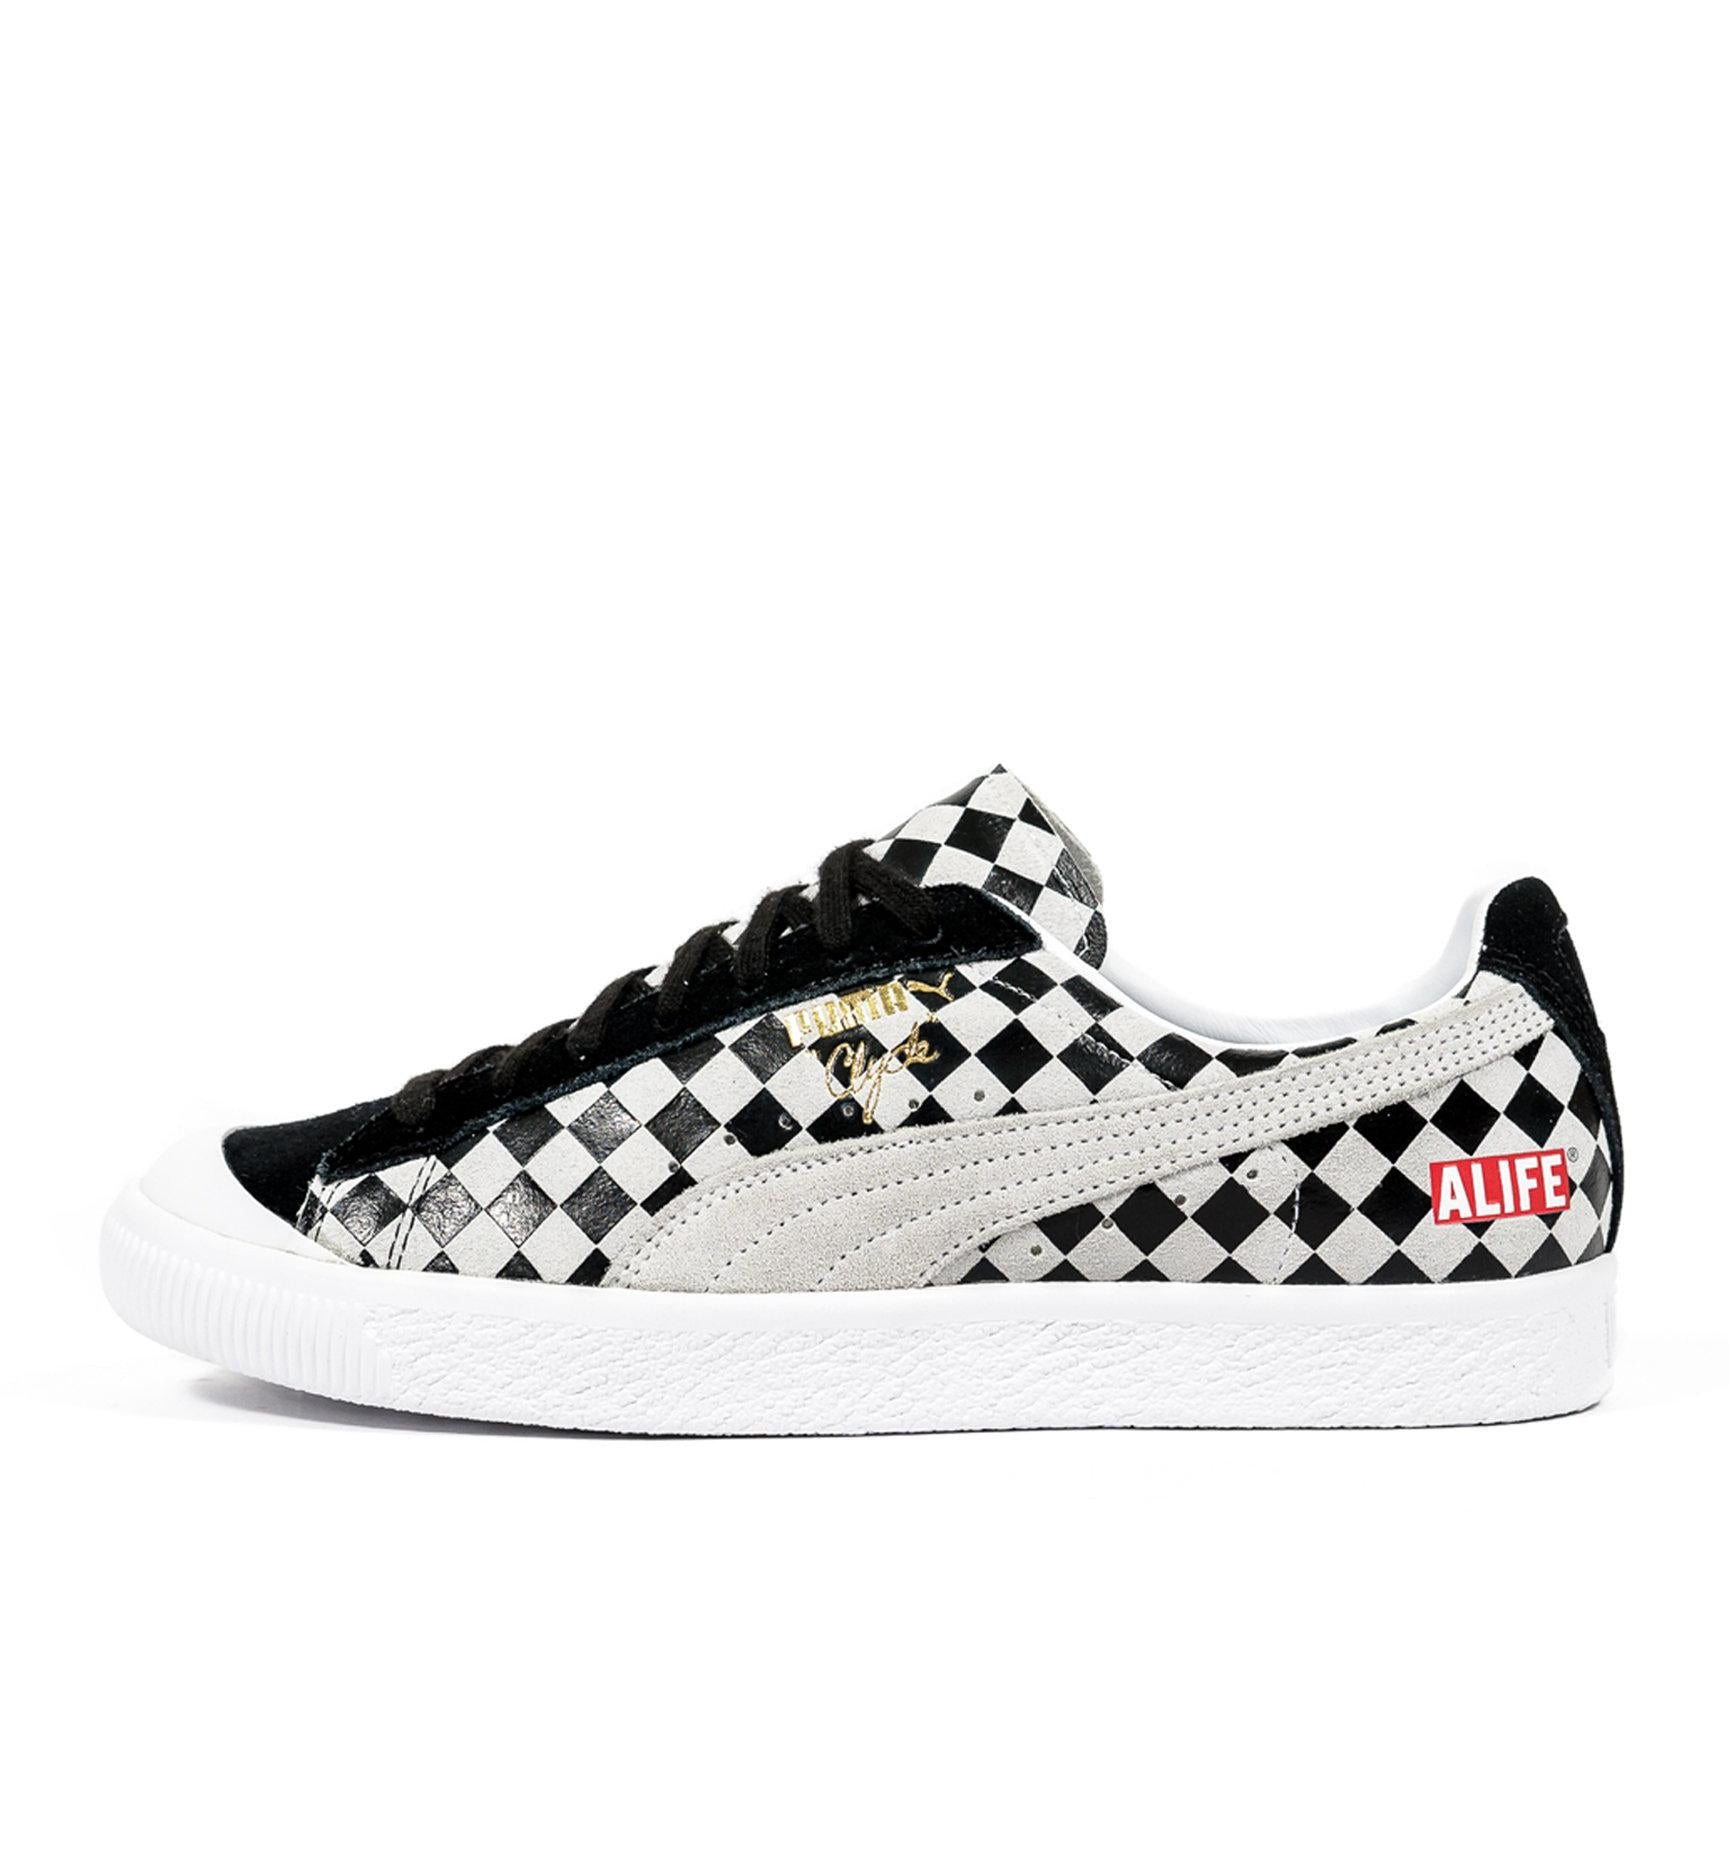 Puma Clyde Alife 36598901 in Argyle side view